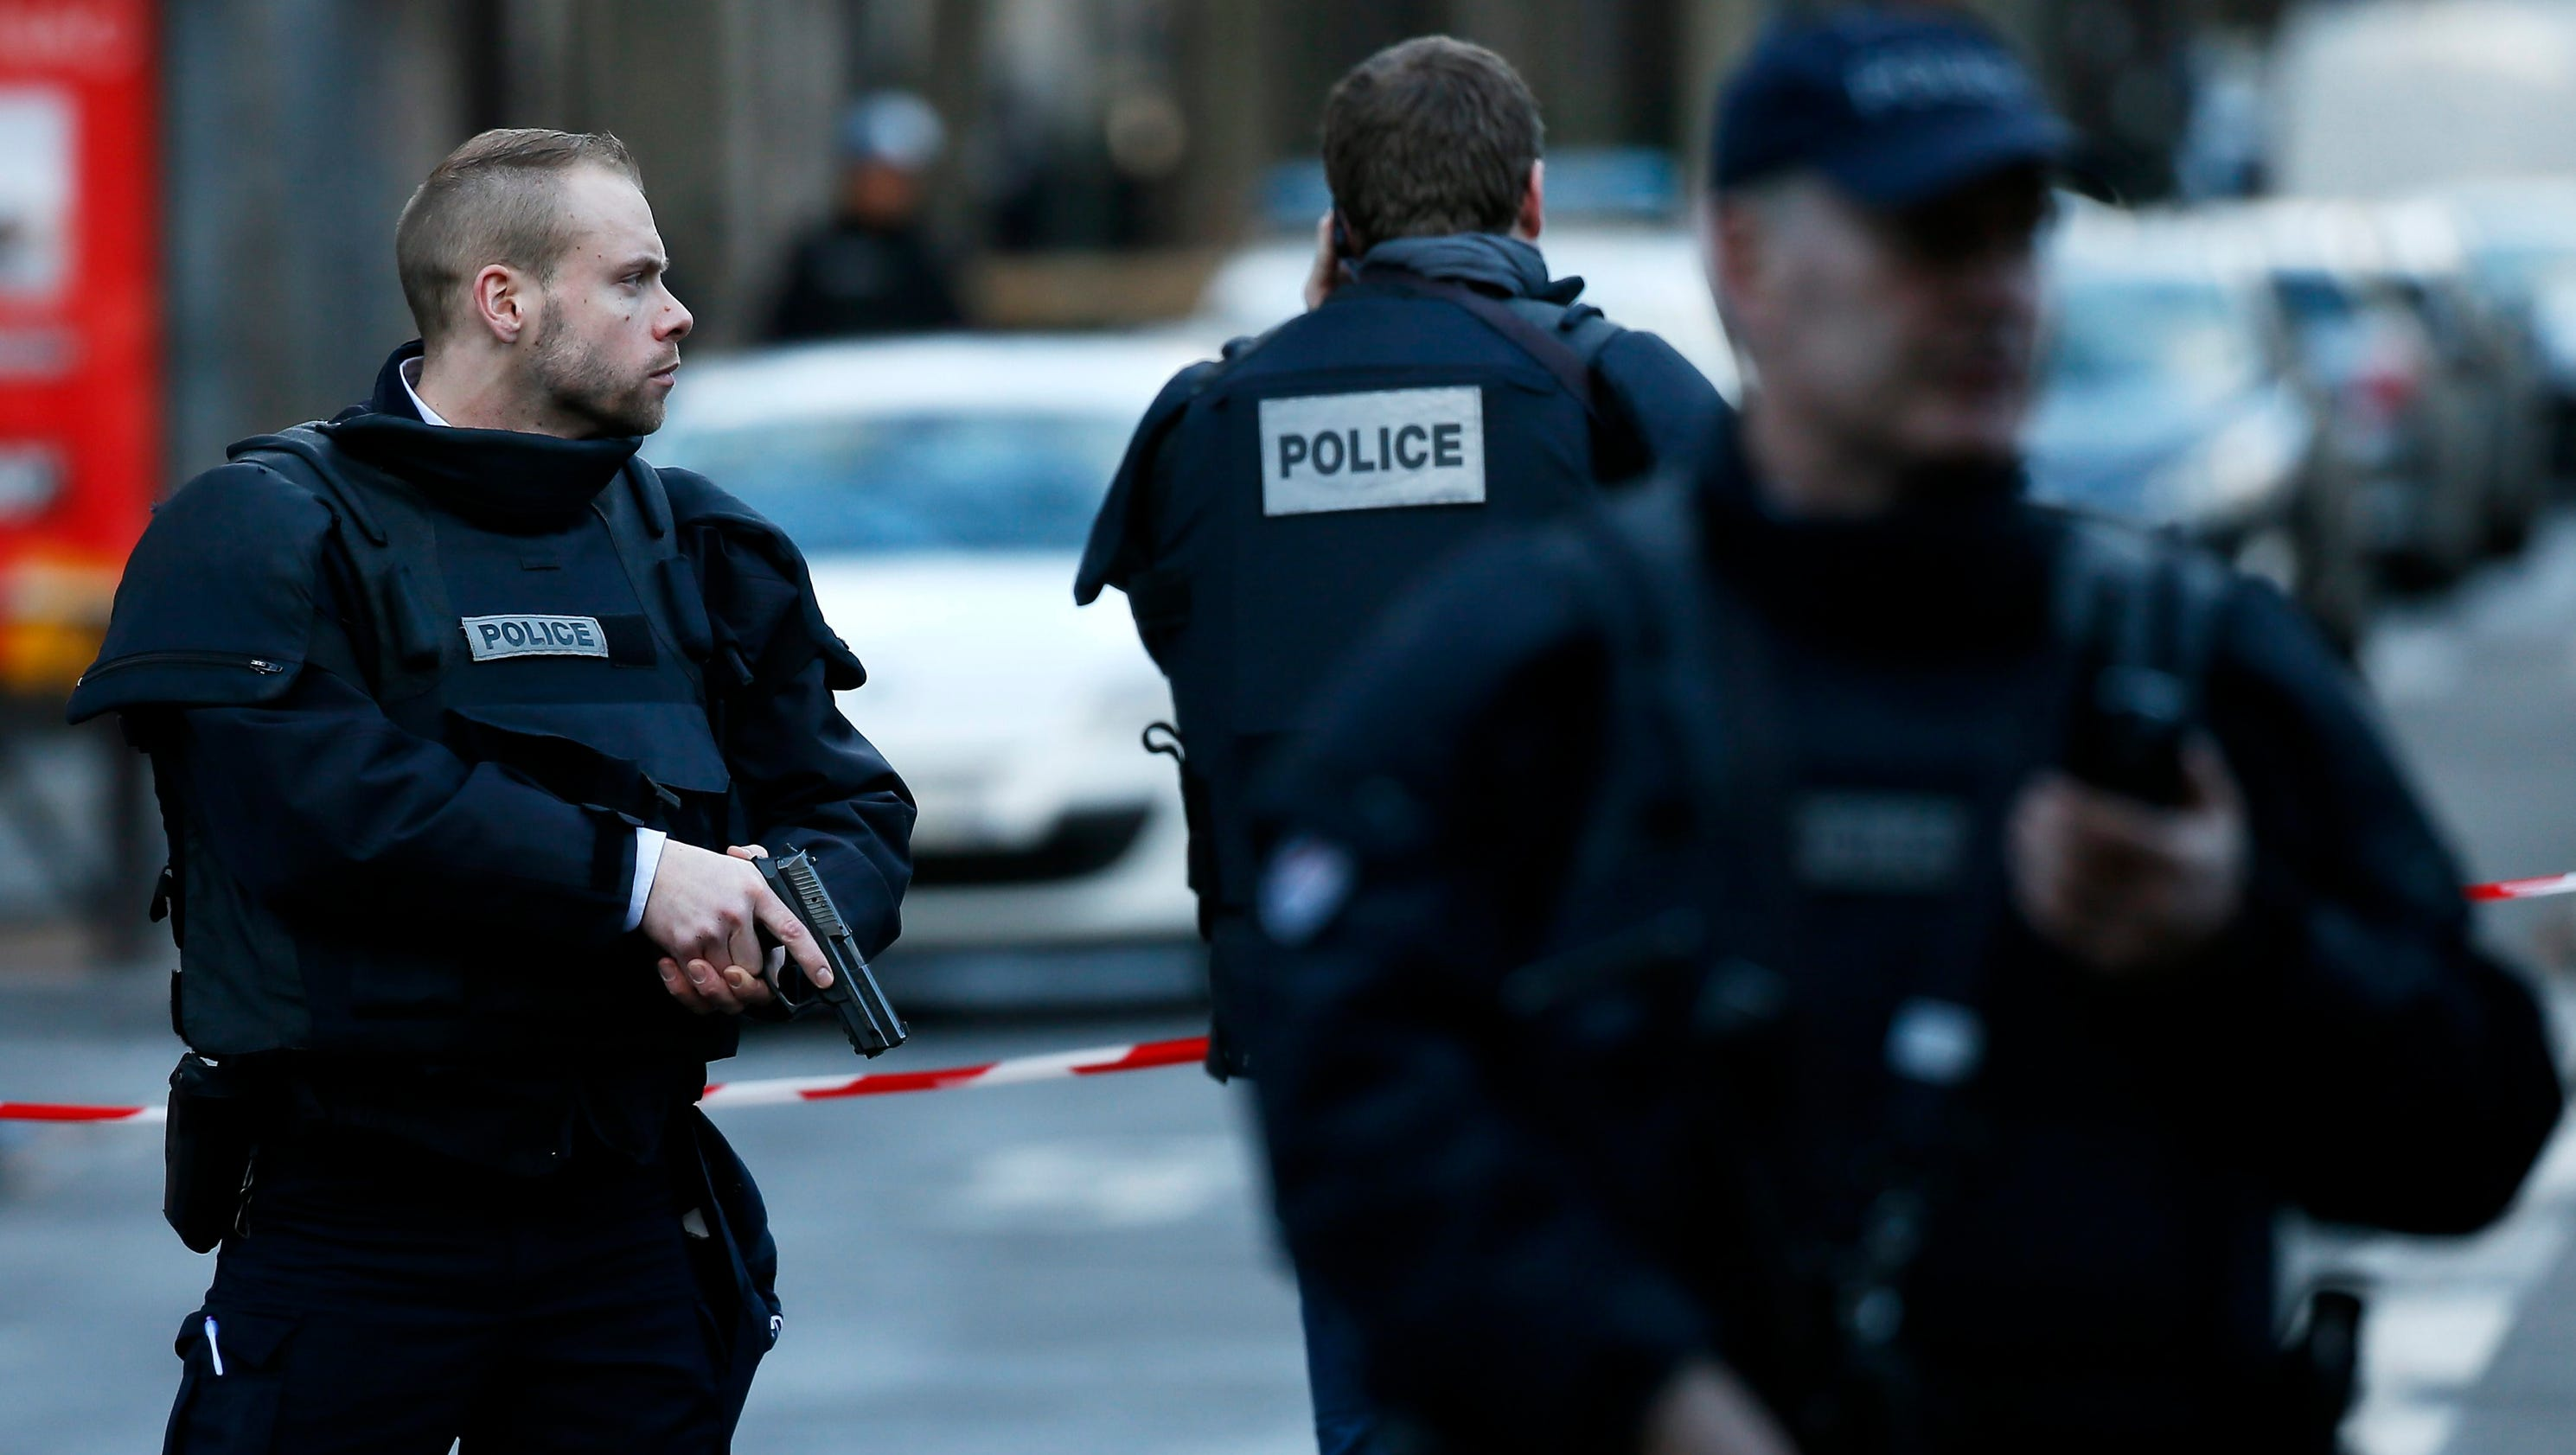 dynamic stories france paris police shot latest